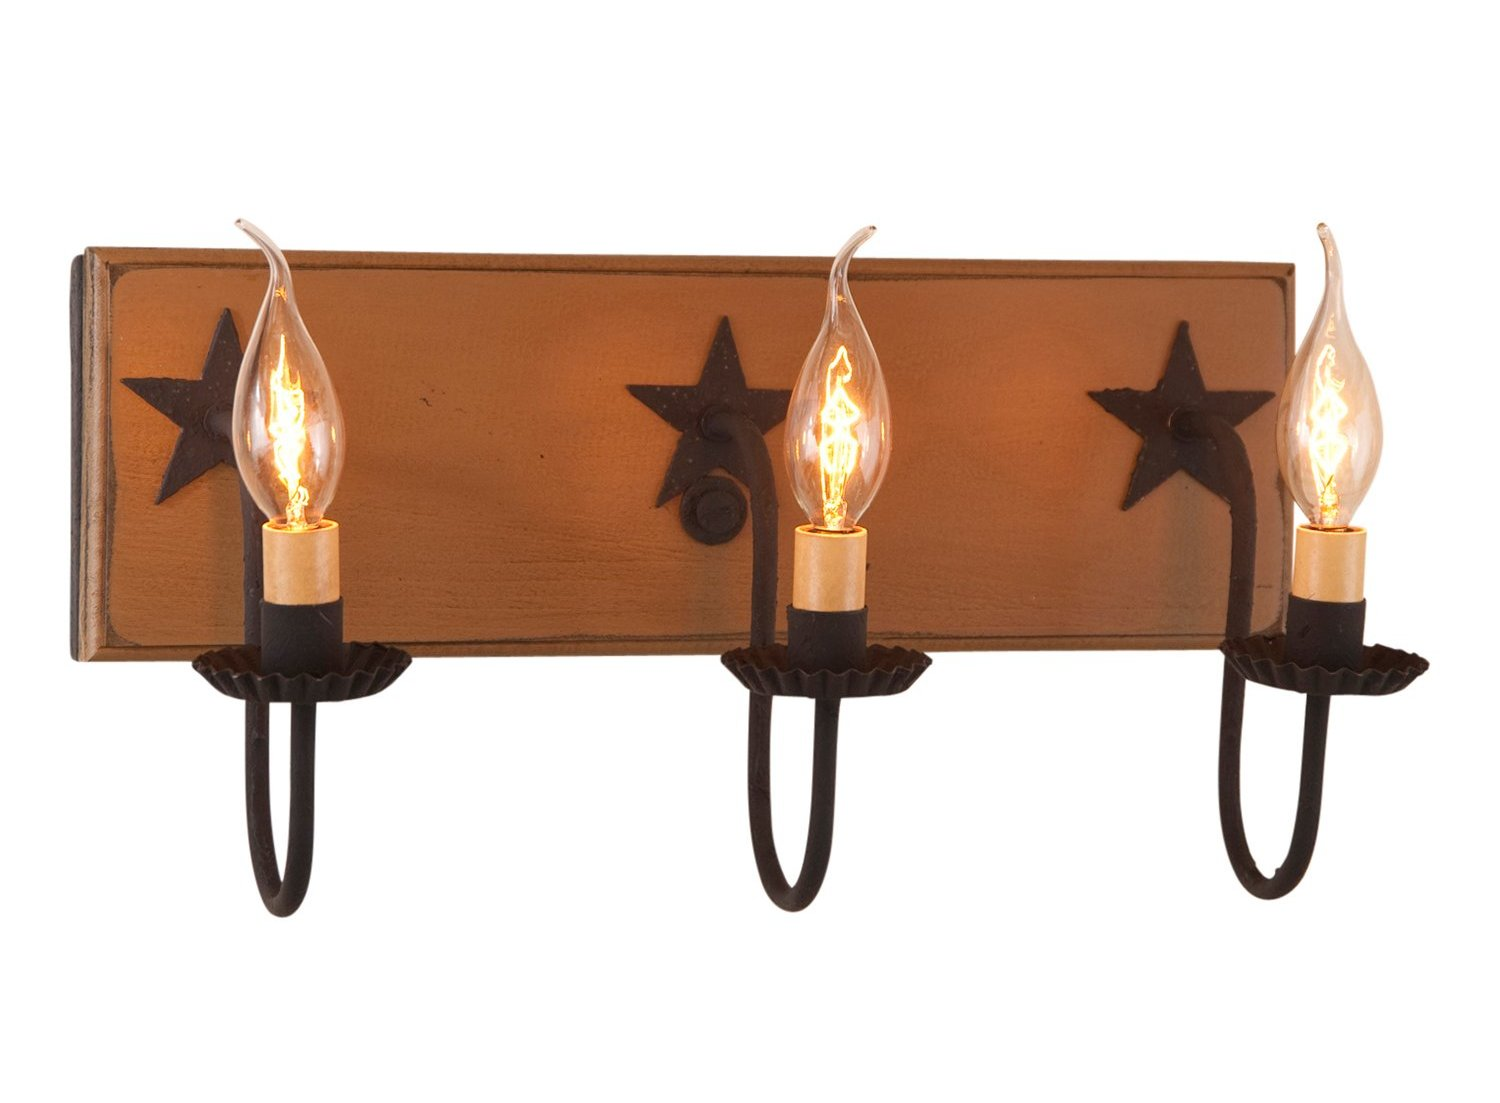 3-Arm Country Vanity Light Bar with Stars - Allysons Place